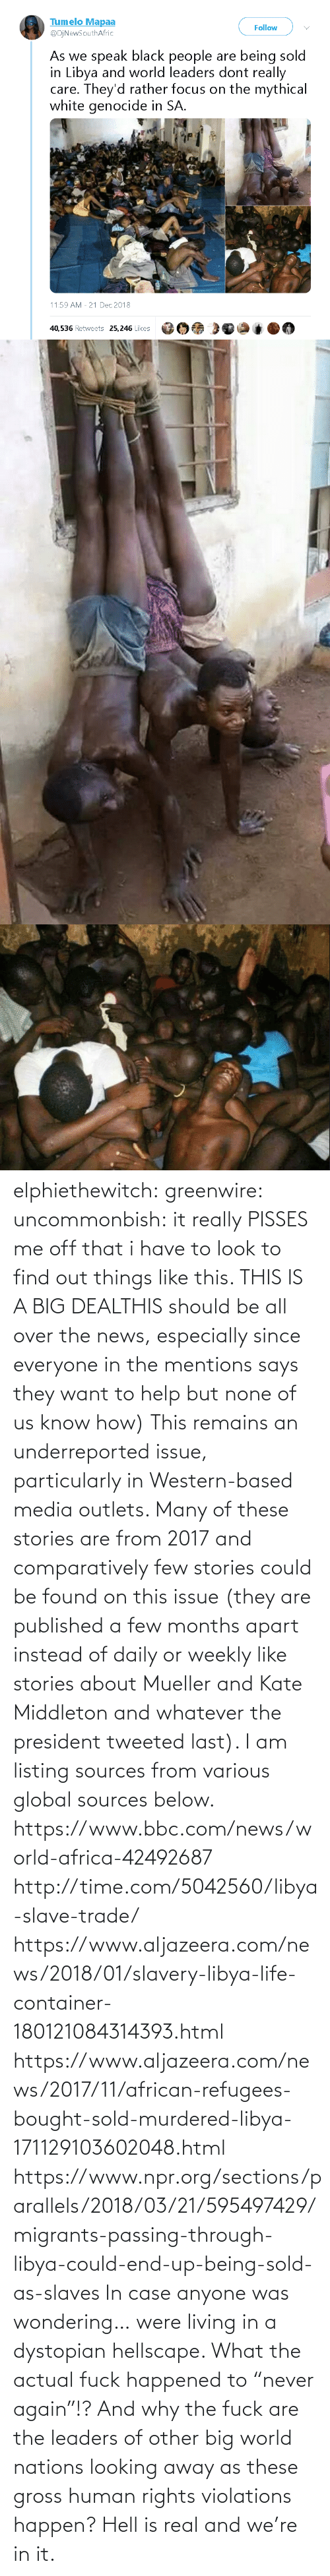 "what the: elphiethewitch: greenwire:  uncommonbish:  it really PISSES me off that i have to look to find out things like this. THIS IS A BIG DEALTHIS should be all over the news, especially since everyone in the mentions says they want to help but none of us know how)  This remains an underreported issue, particularly in Western-based media outlets. Many of these stories are from 2017 and comparatively few stories could be found on this issue (they are published a few months apart instead of daily or weekly like stories about Mueller and Kate Middleton and whatever the president tweeted last). I am listing sources from various global sources below.  https://www.bbc.com/news/world-africa-42492687 http://time.com/5042560/libya-slave-trade/ https://www.aljazeera.com/news/2018/01/slavery-libya-life-container-180121084314393.html https://www.aljazeera.com/news/2017/11/african-refugees-bought-sold-murdered-libya-171129103602048.html https://www.npr.org/sections/parallels/2018/03/21/595497429/migrants-passing-through-libya-could-end-up-being-sold-as-slaves   In case anyone was wondering… were living in a dystopian hellscape.  What the actual fuck happened to ""never again""!? And why the fuck are the leaders of other big world nations looking away as these gross human rights violations happen?  Hell is real and we're in it."